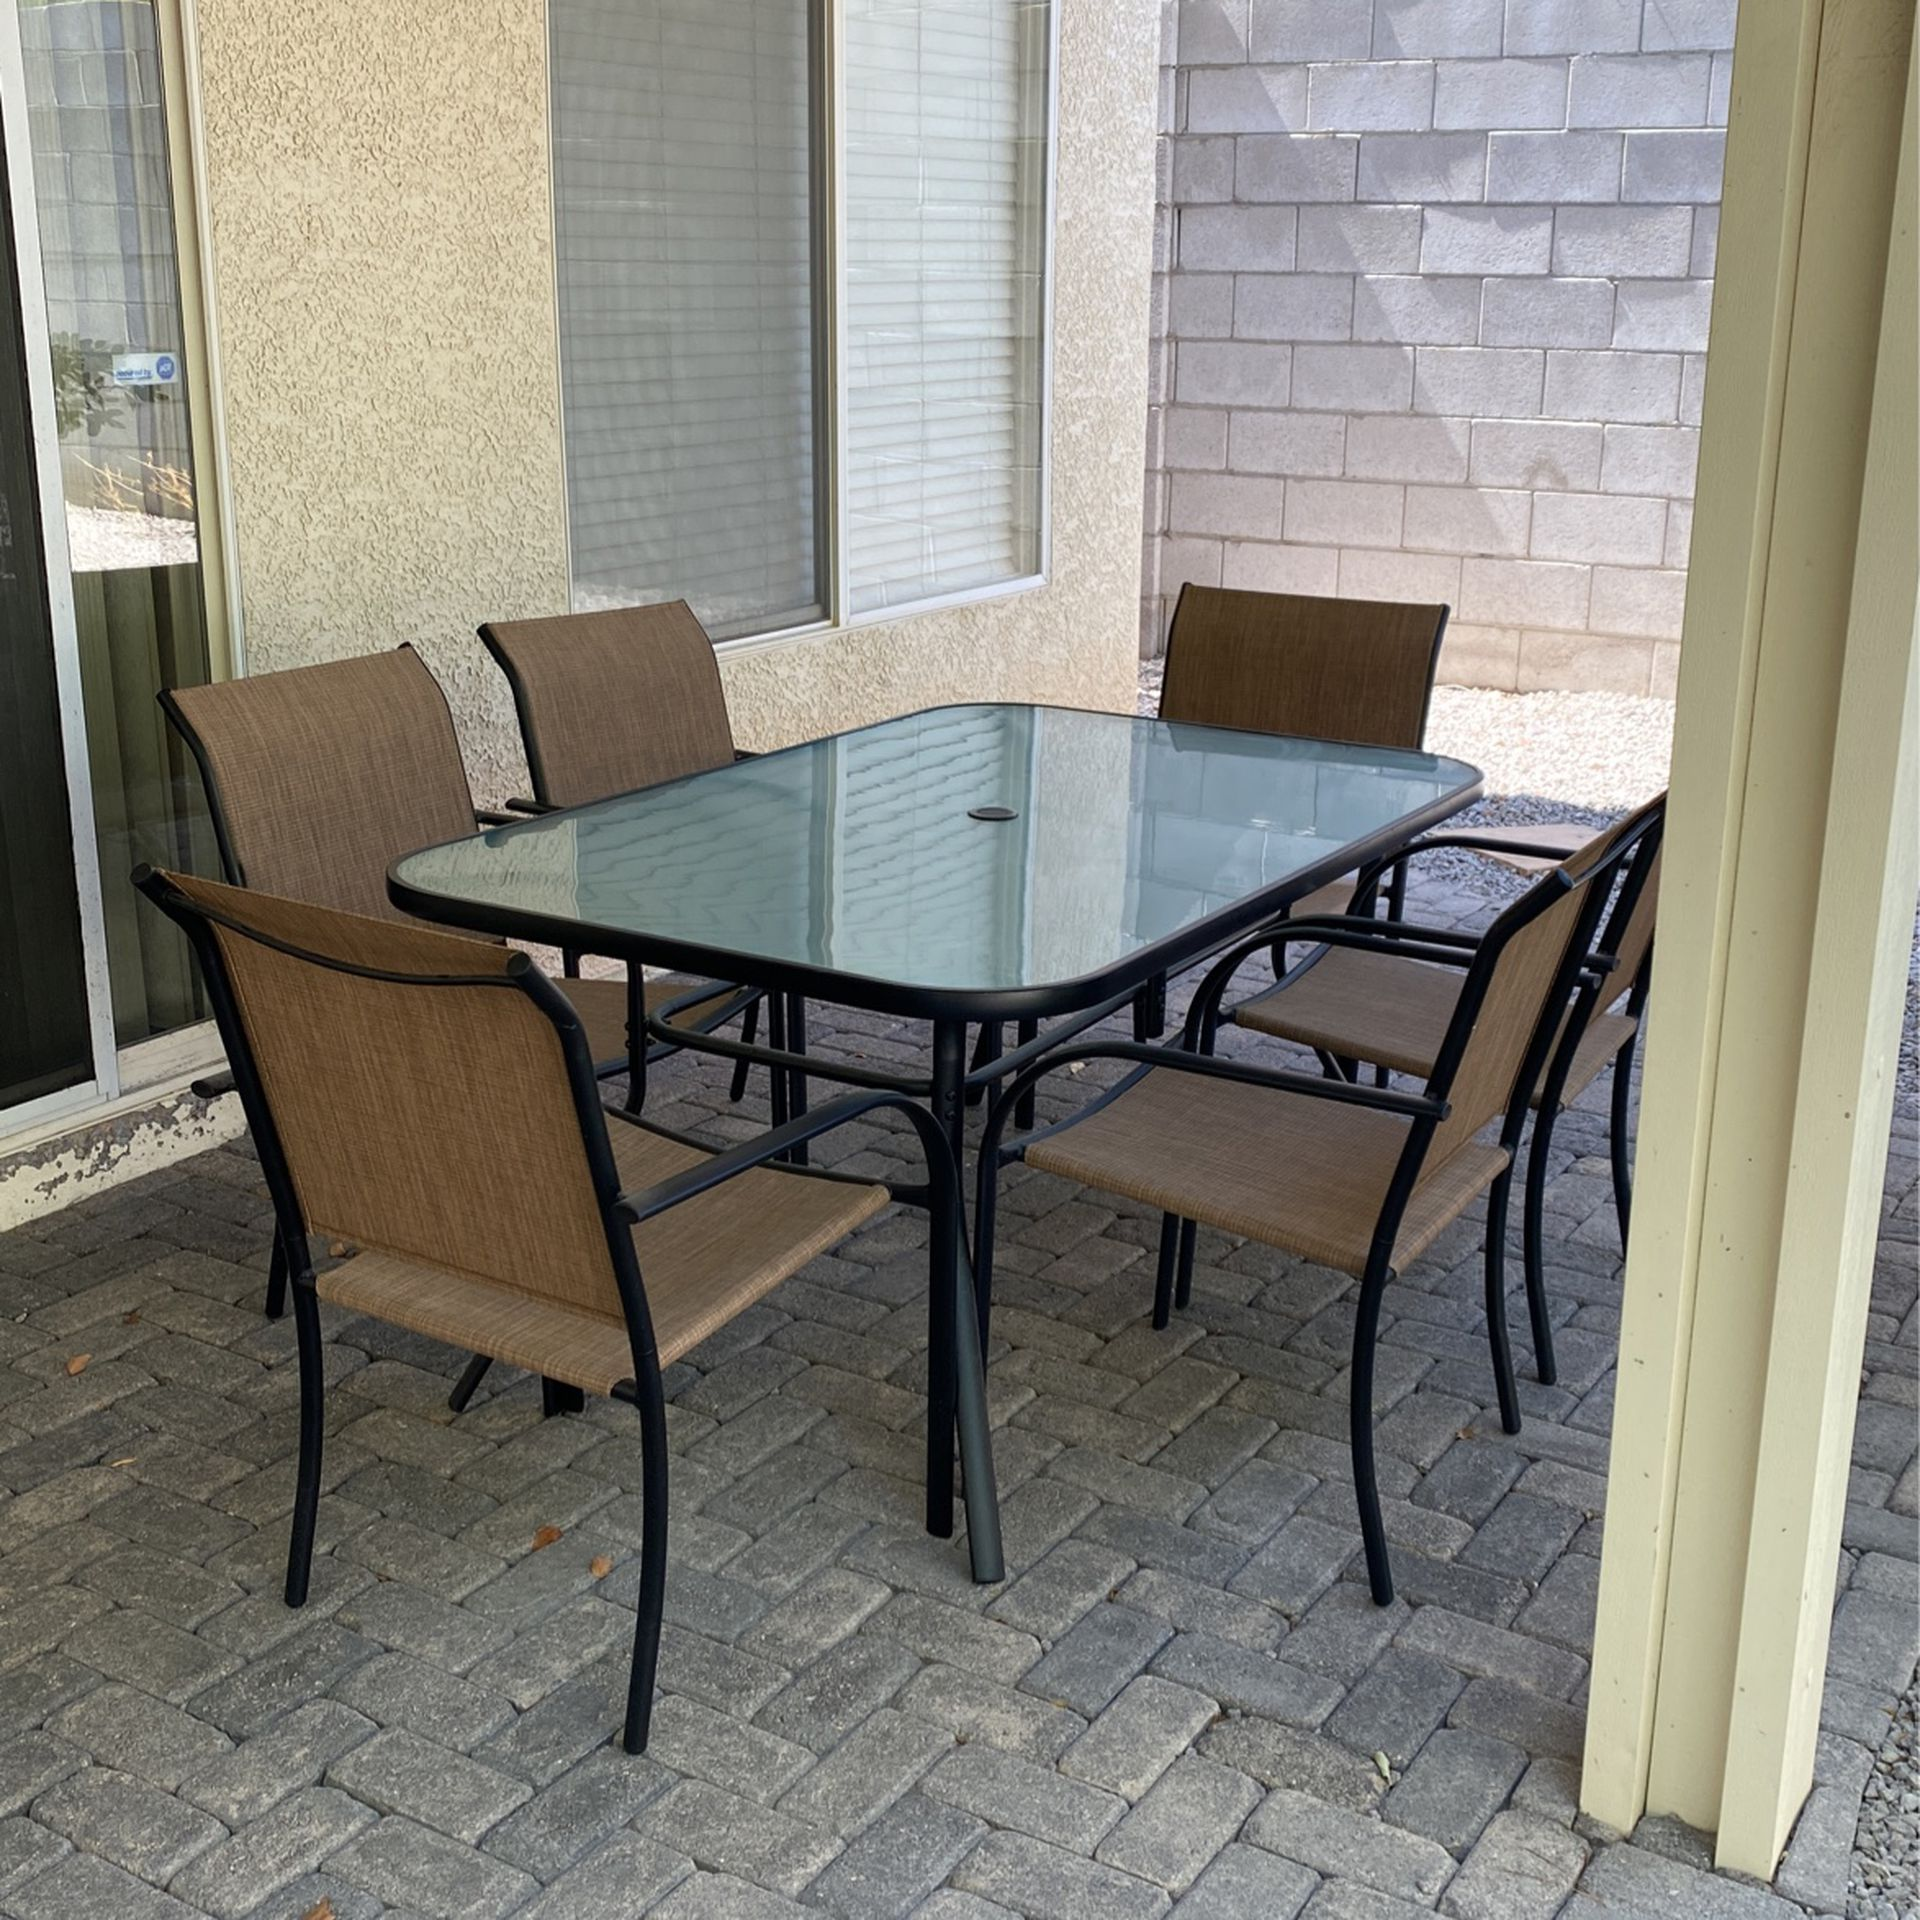 7 Pc. Outdoor Dining Table- $200 OBO